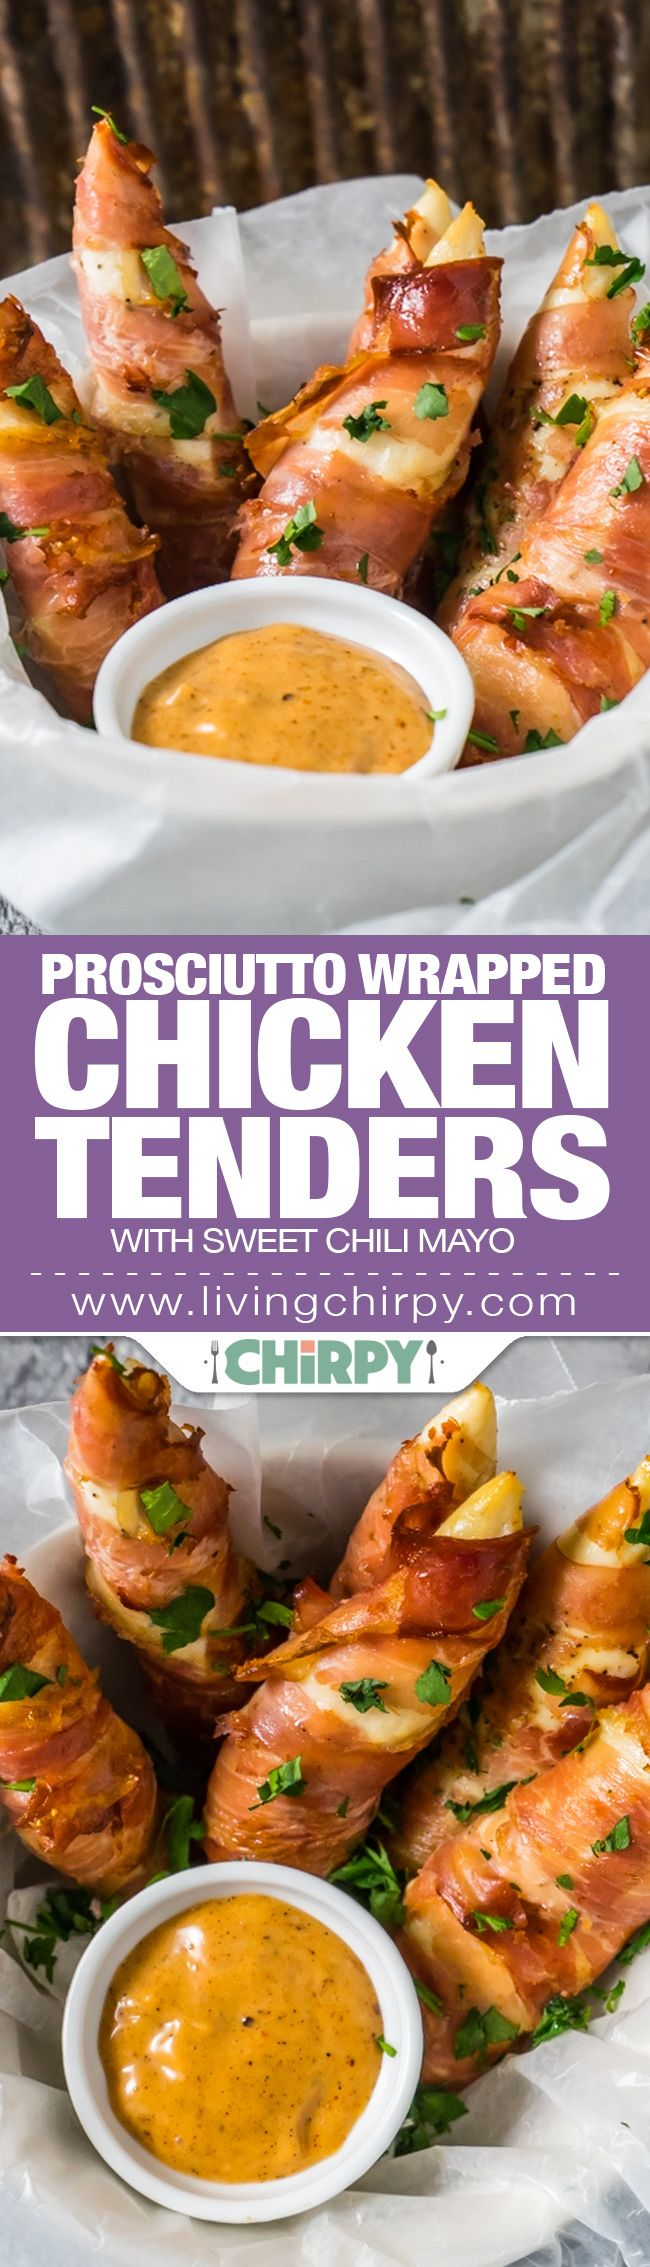 Prosciutto Wrapped Chicken Tenders with Sweet Chili Mayo.